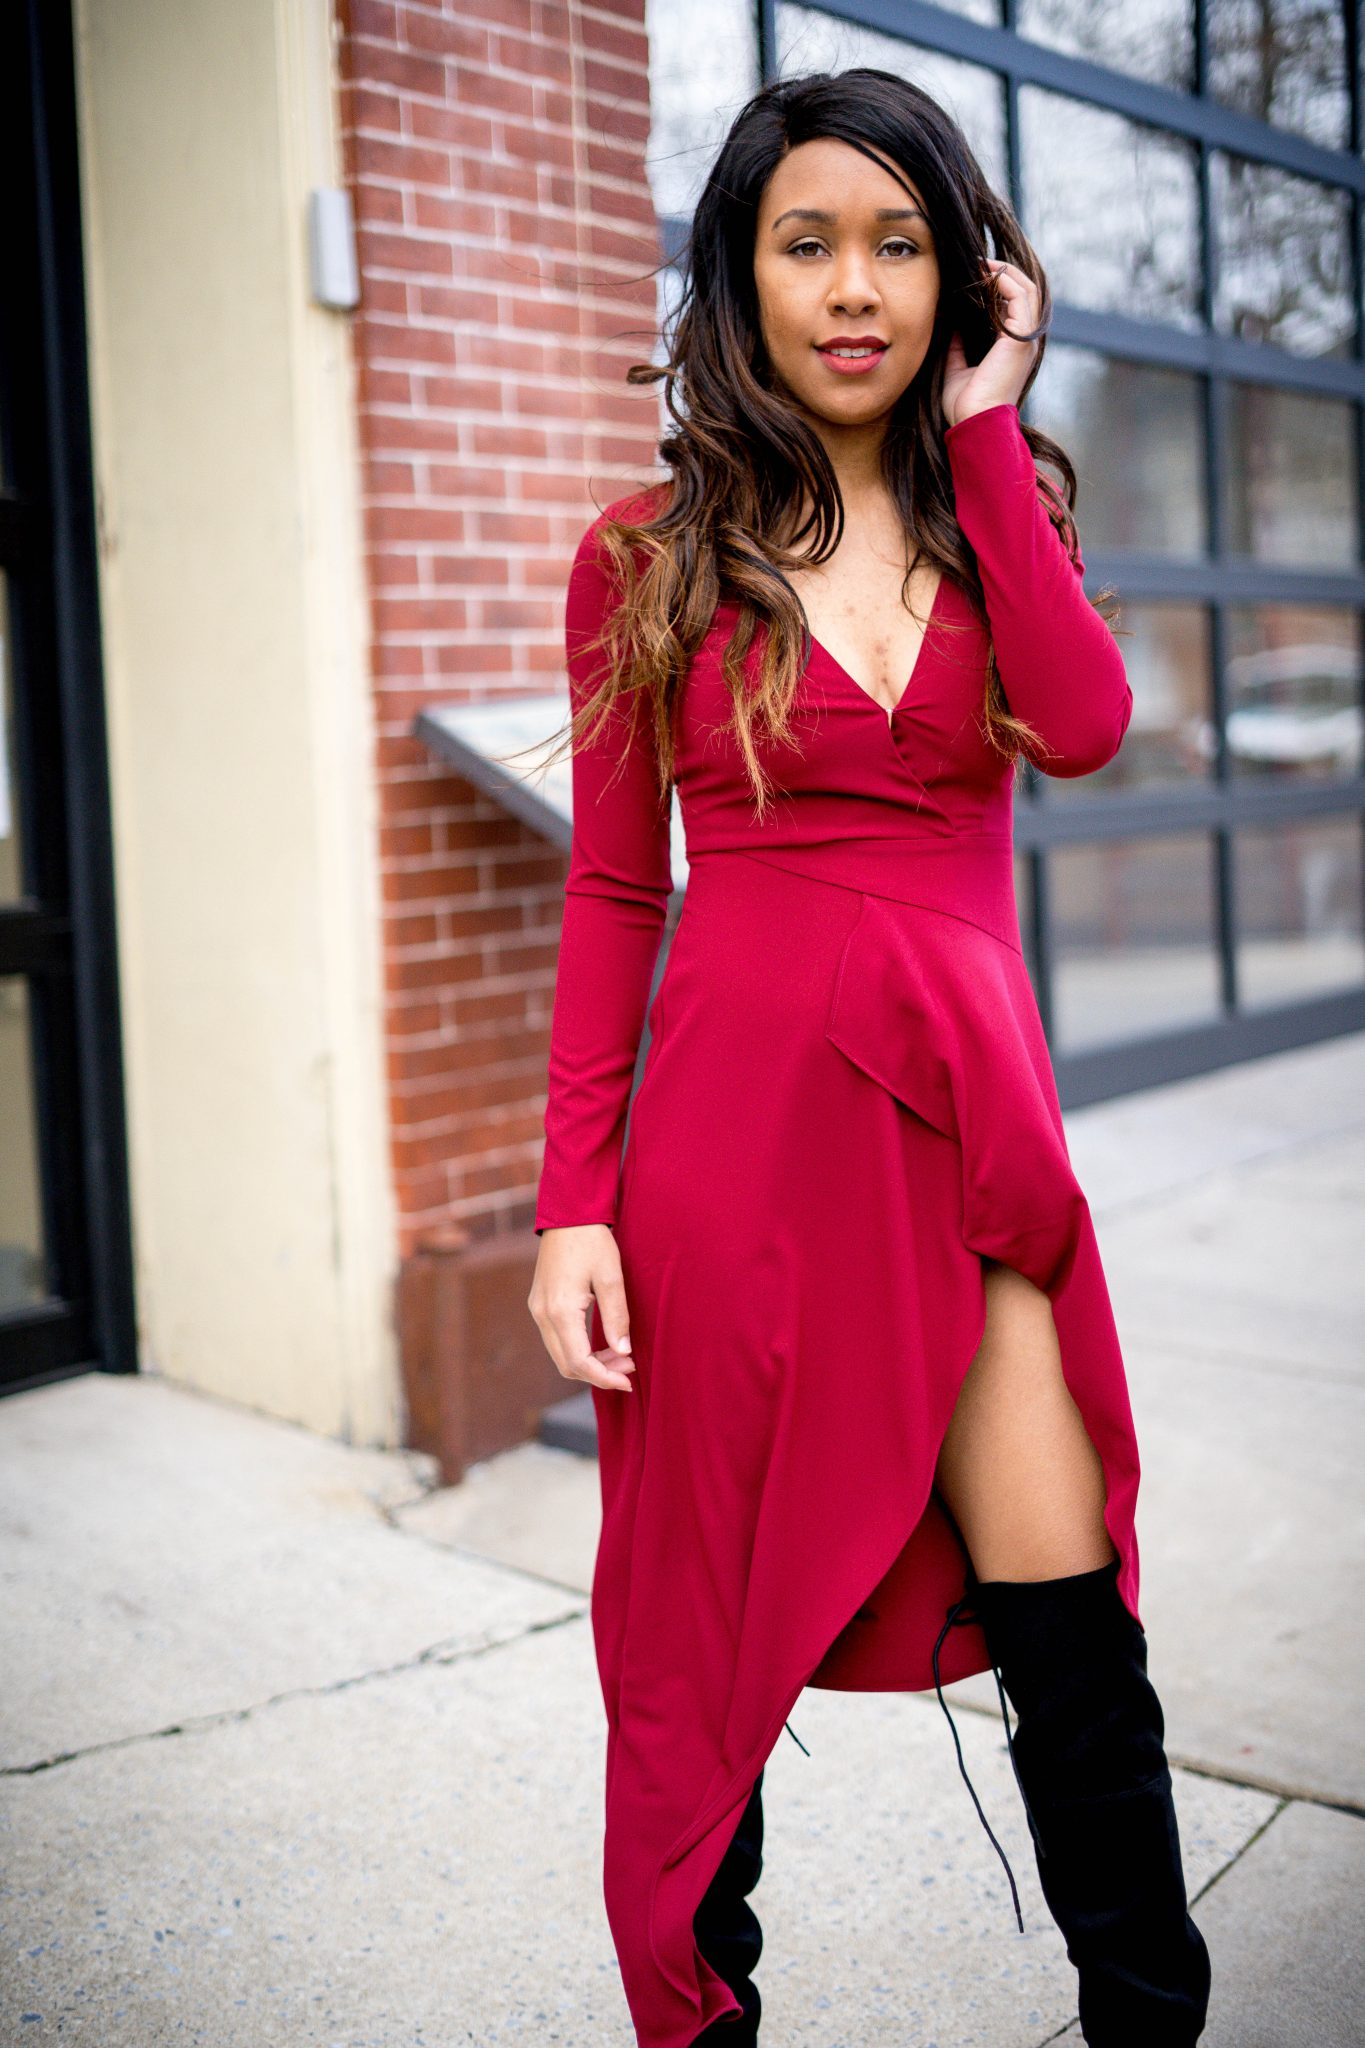 livinglesh wearing a valentine's day dress from revolve